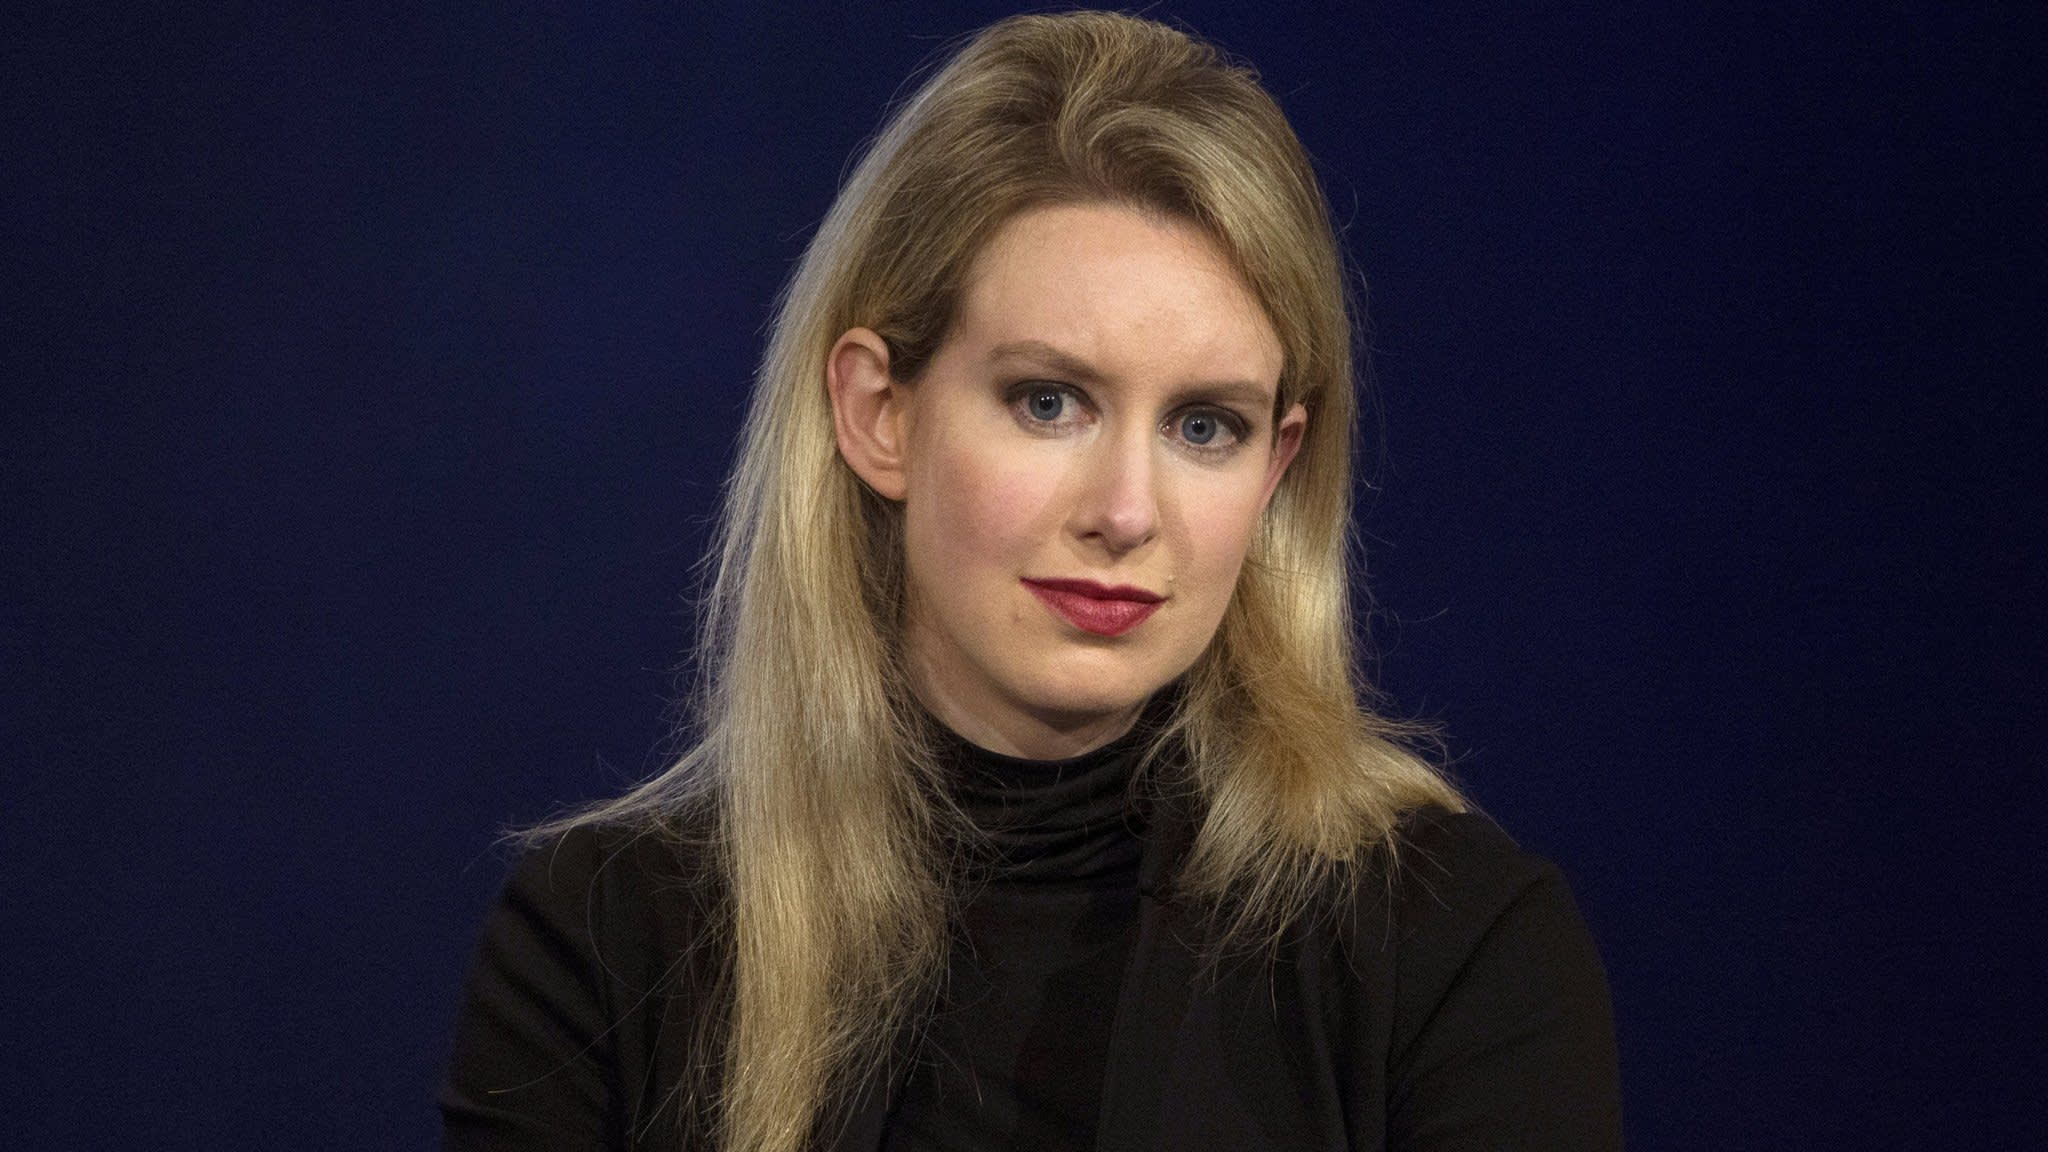 Fresh blood: why everyone fell for Theranos